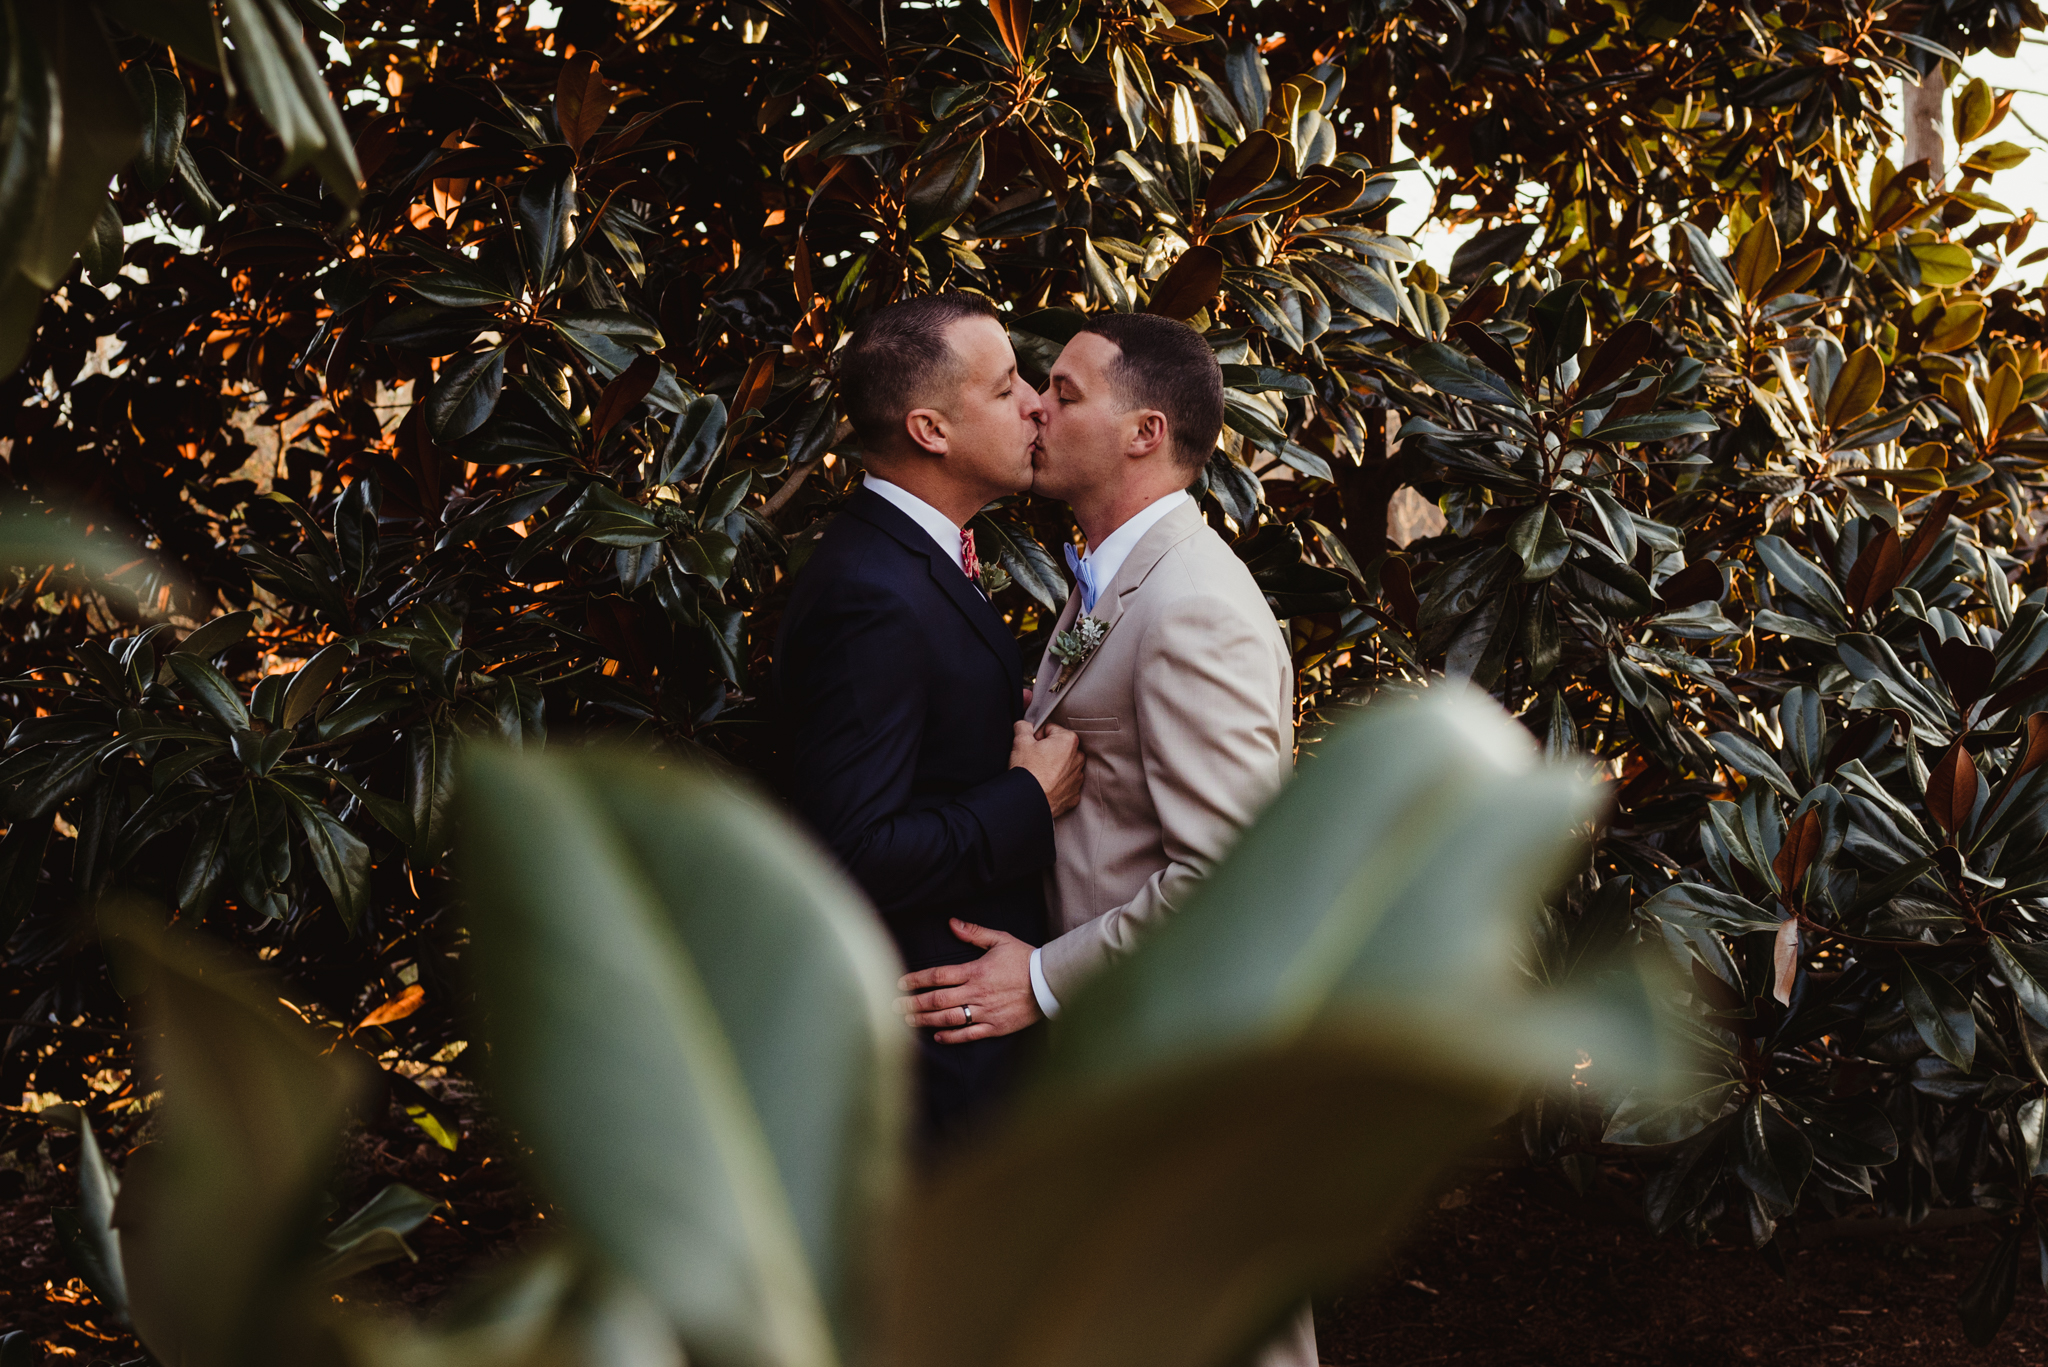 Two-grooms-kiss-in-the-magnolia-tree-at-windy-hill-farm